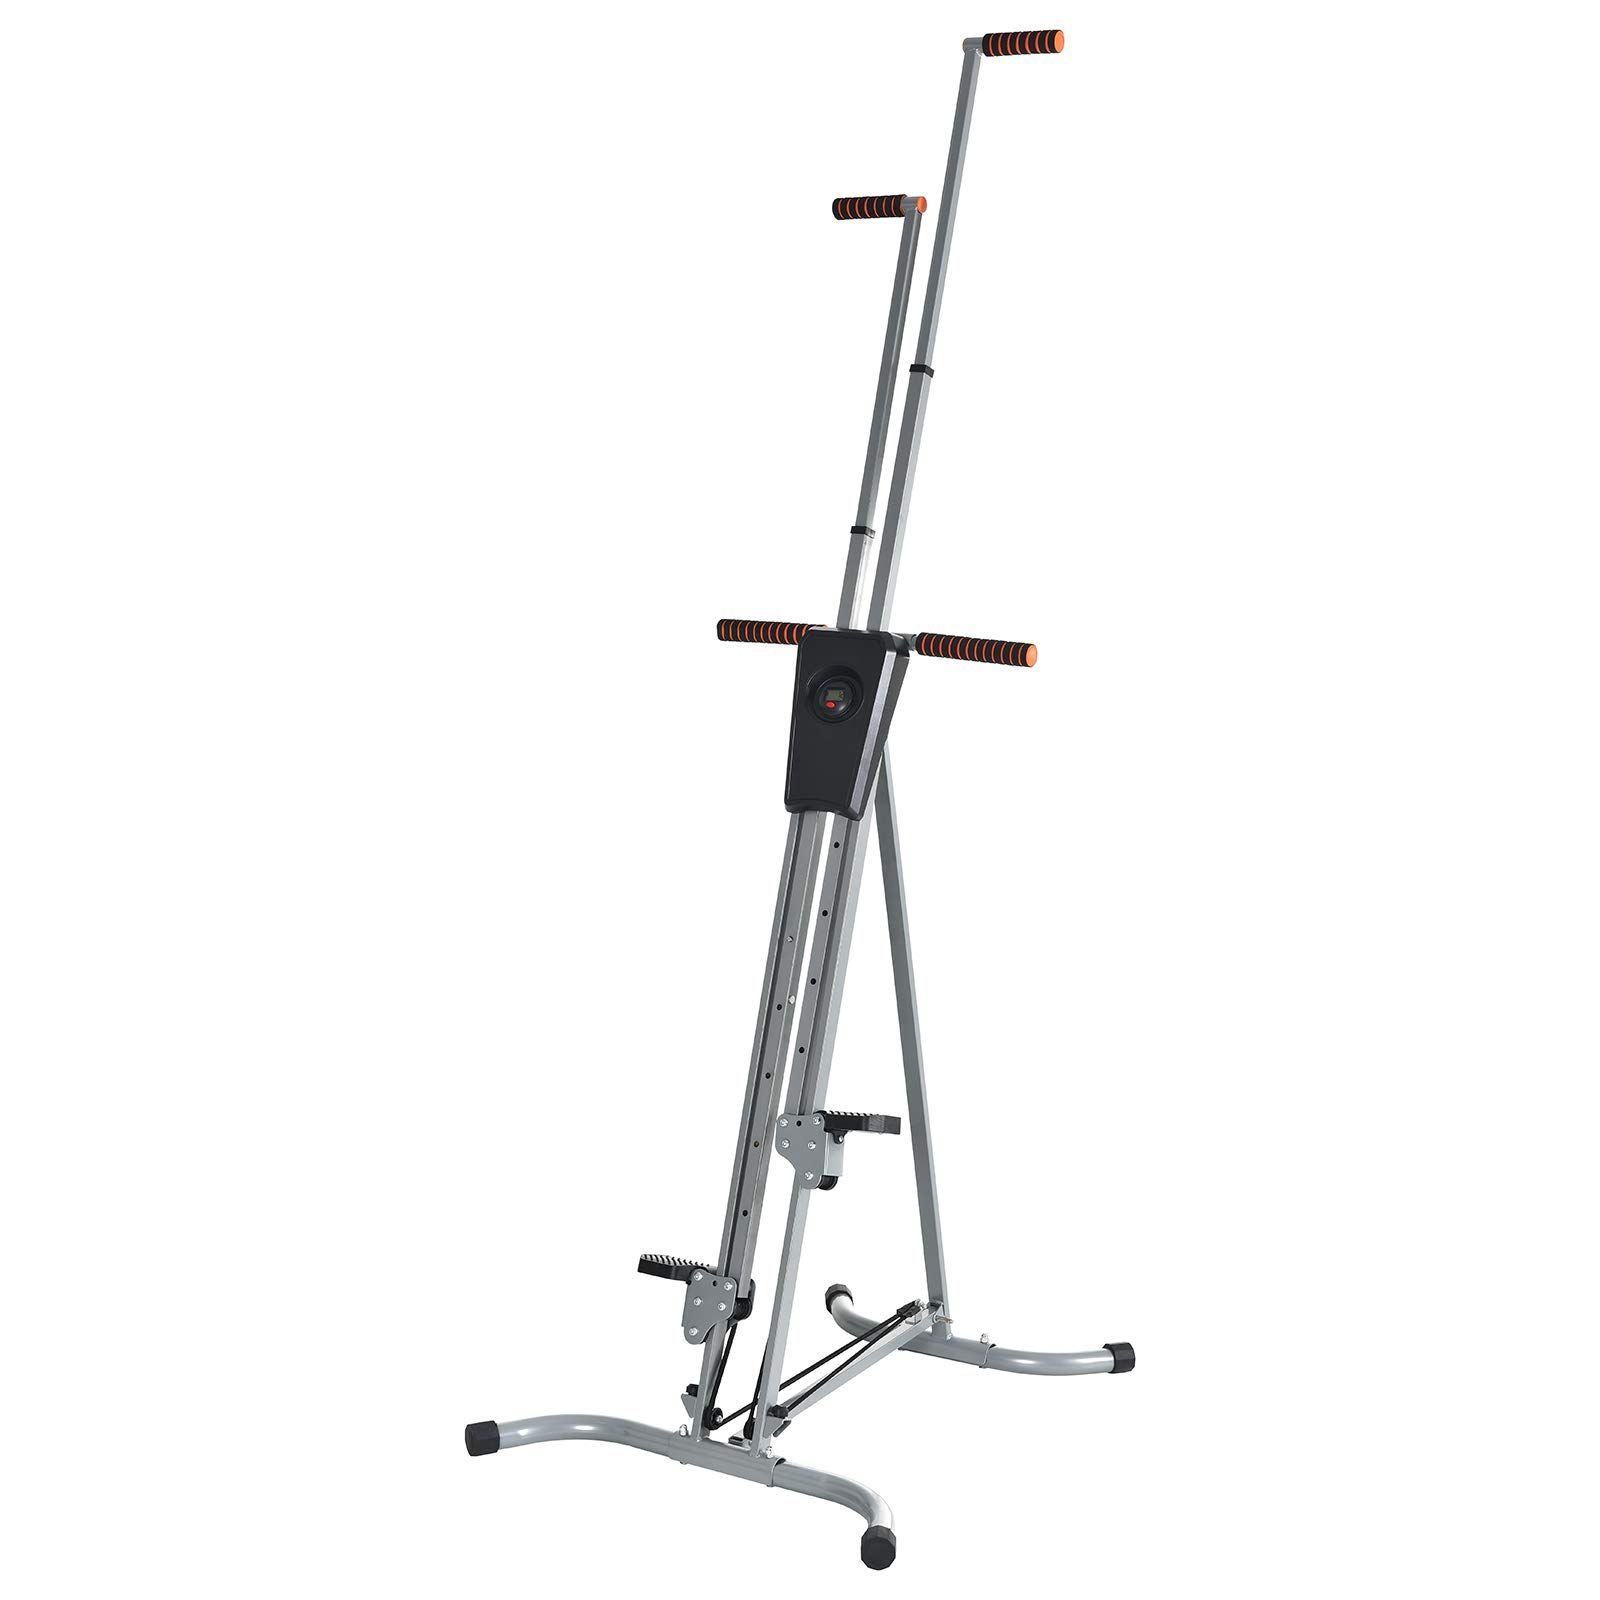 Murtisol Exercise Climber Fitness Vertical Climbing Cardio Machine with LCD Monitor,Natural Climbing Experience for Home Body Trainer by Murtisol (Image #7)